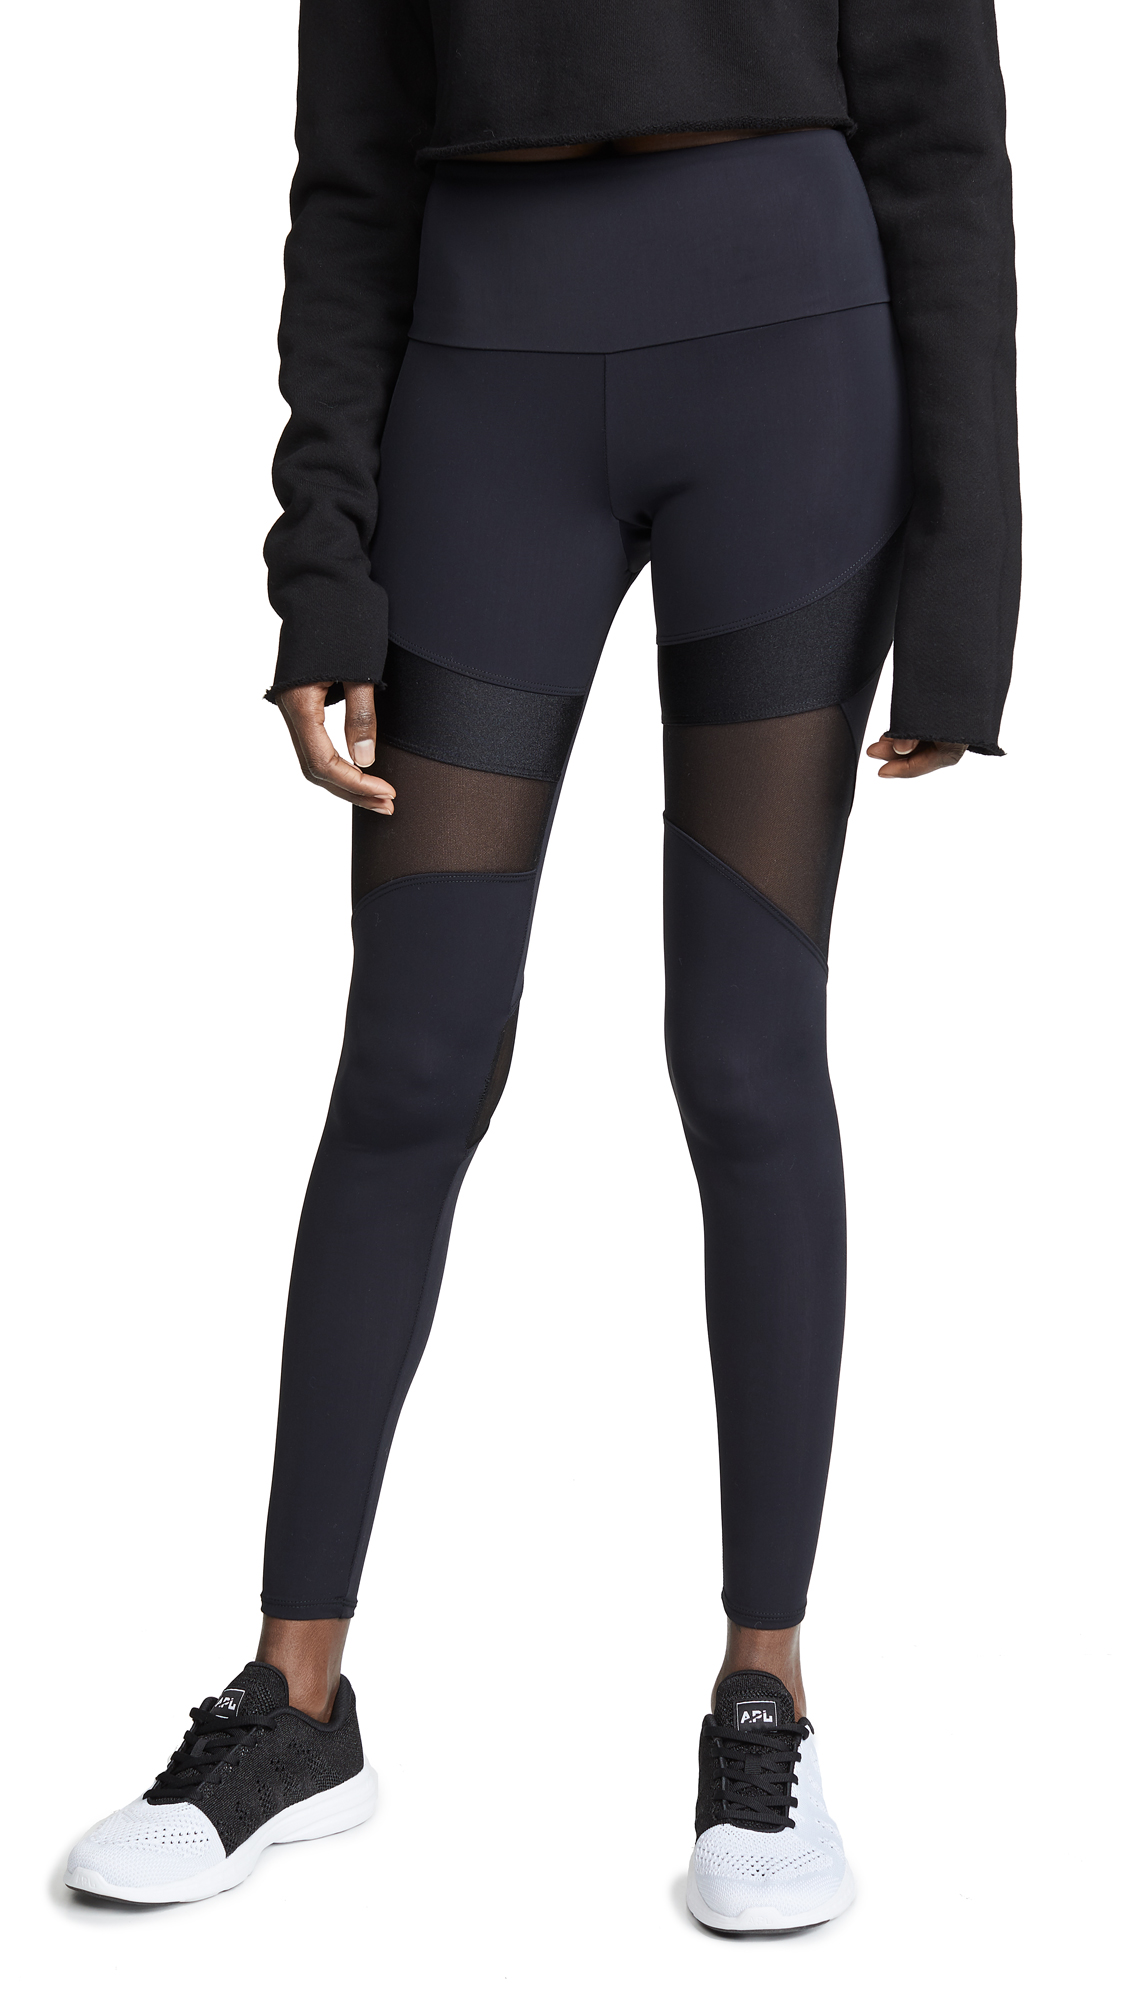 ONZIE Royal Leggings in Black Mystique